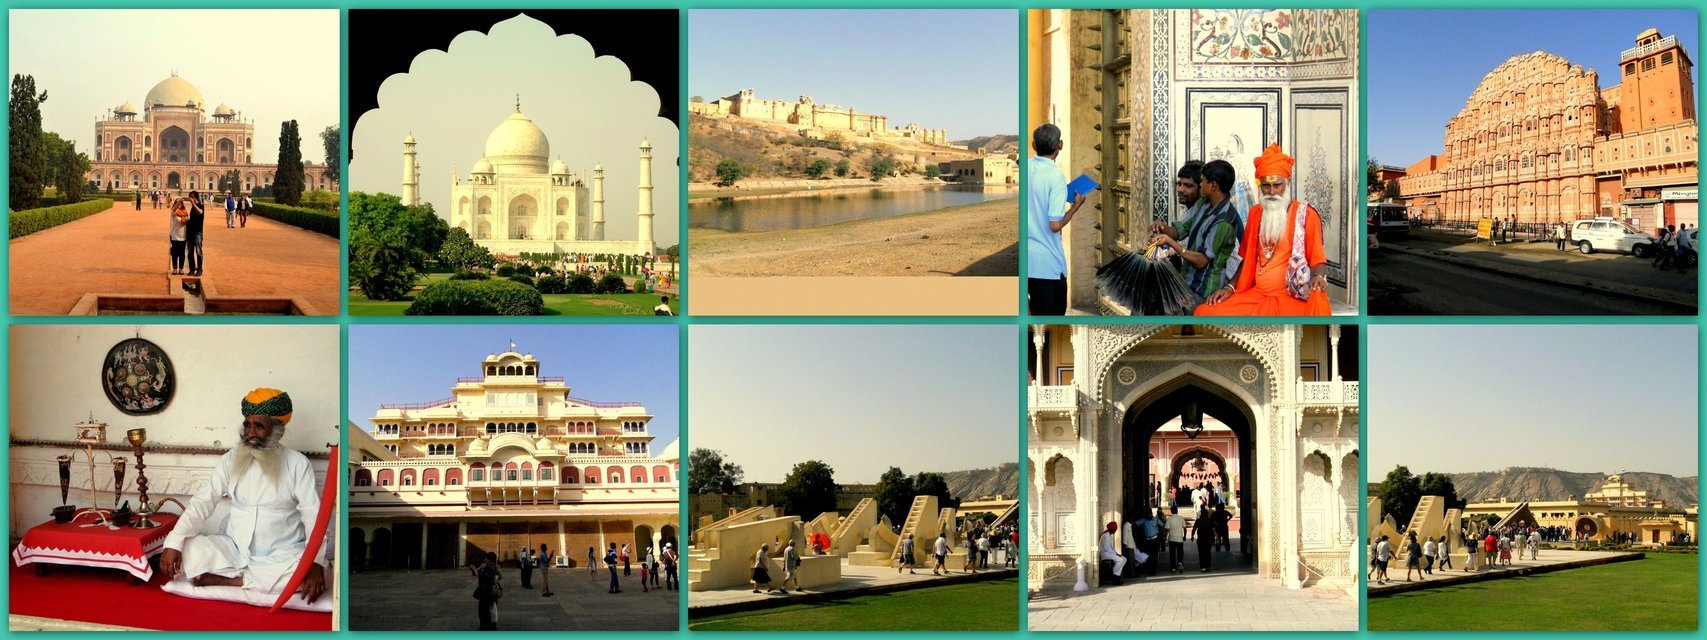 Delhi-Agra-Jaipur Golden Triangle - Tour